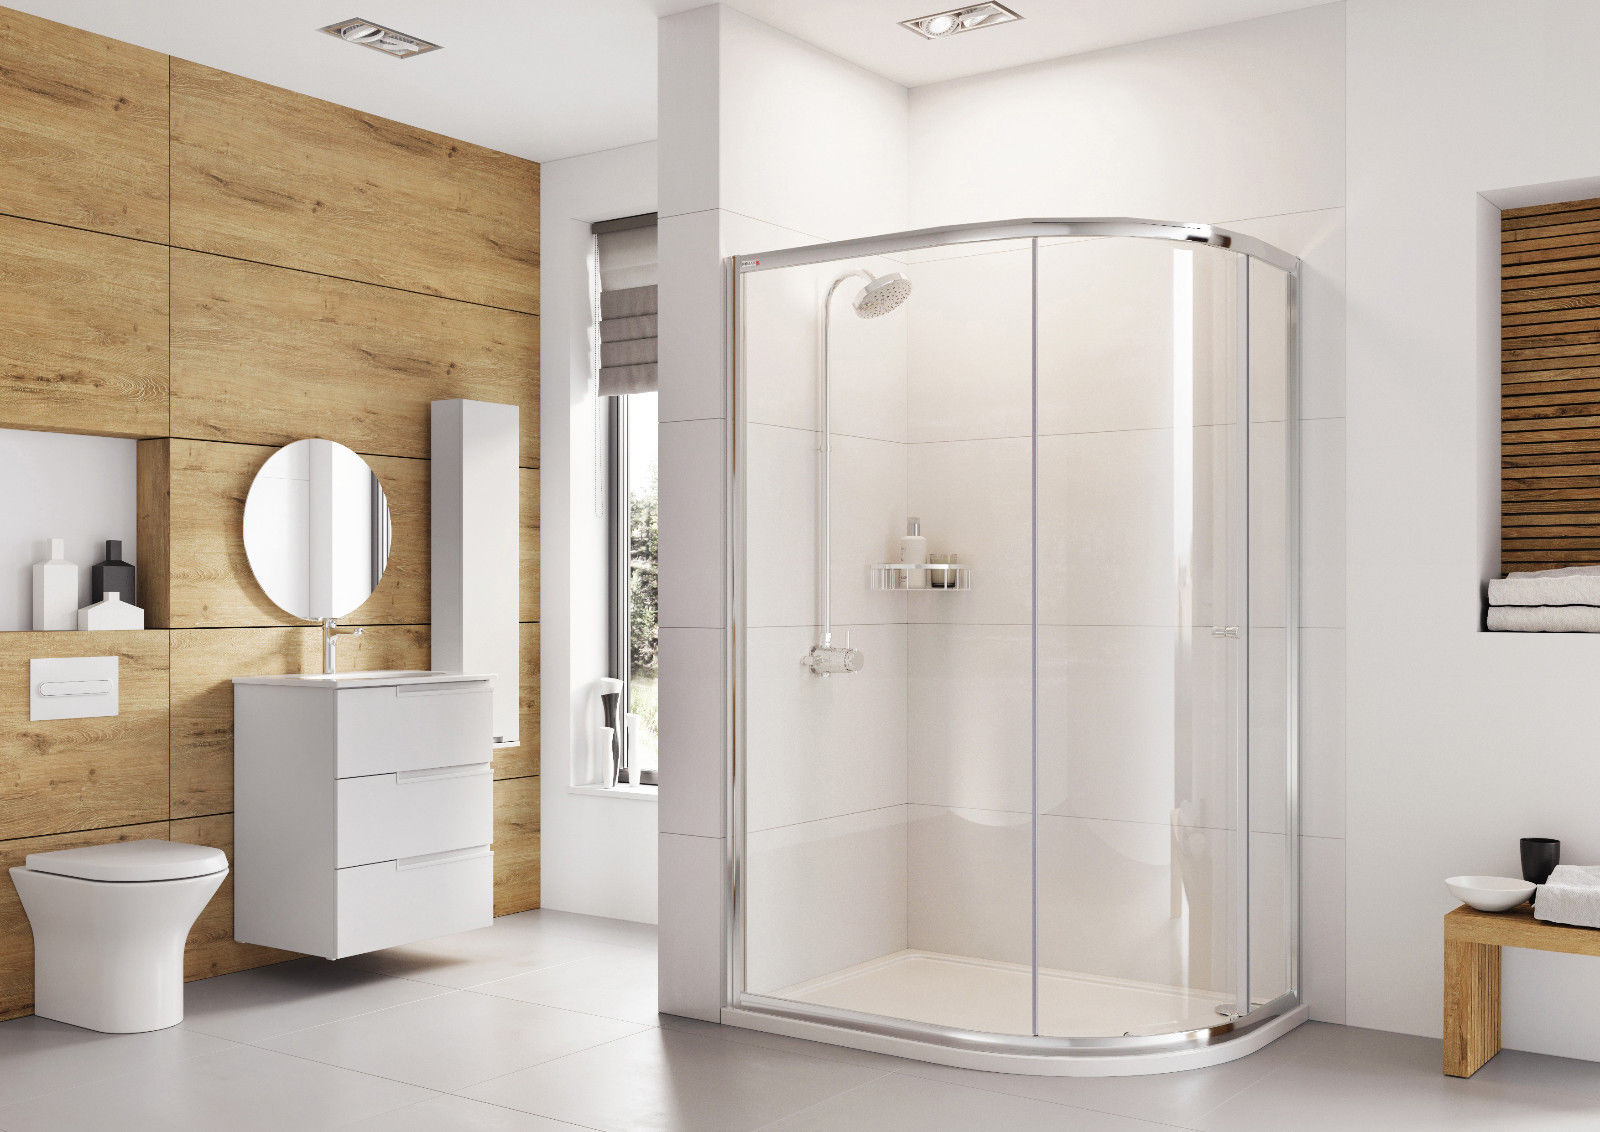 Roman Haven One Door Offset Quadrant Shower Cubicle Enclosure | eBay